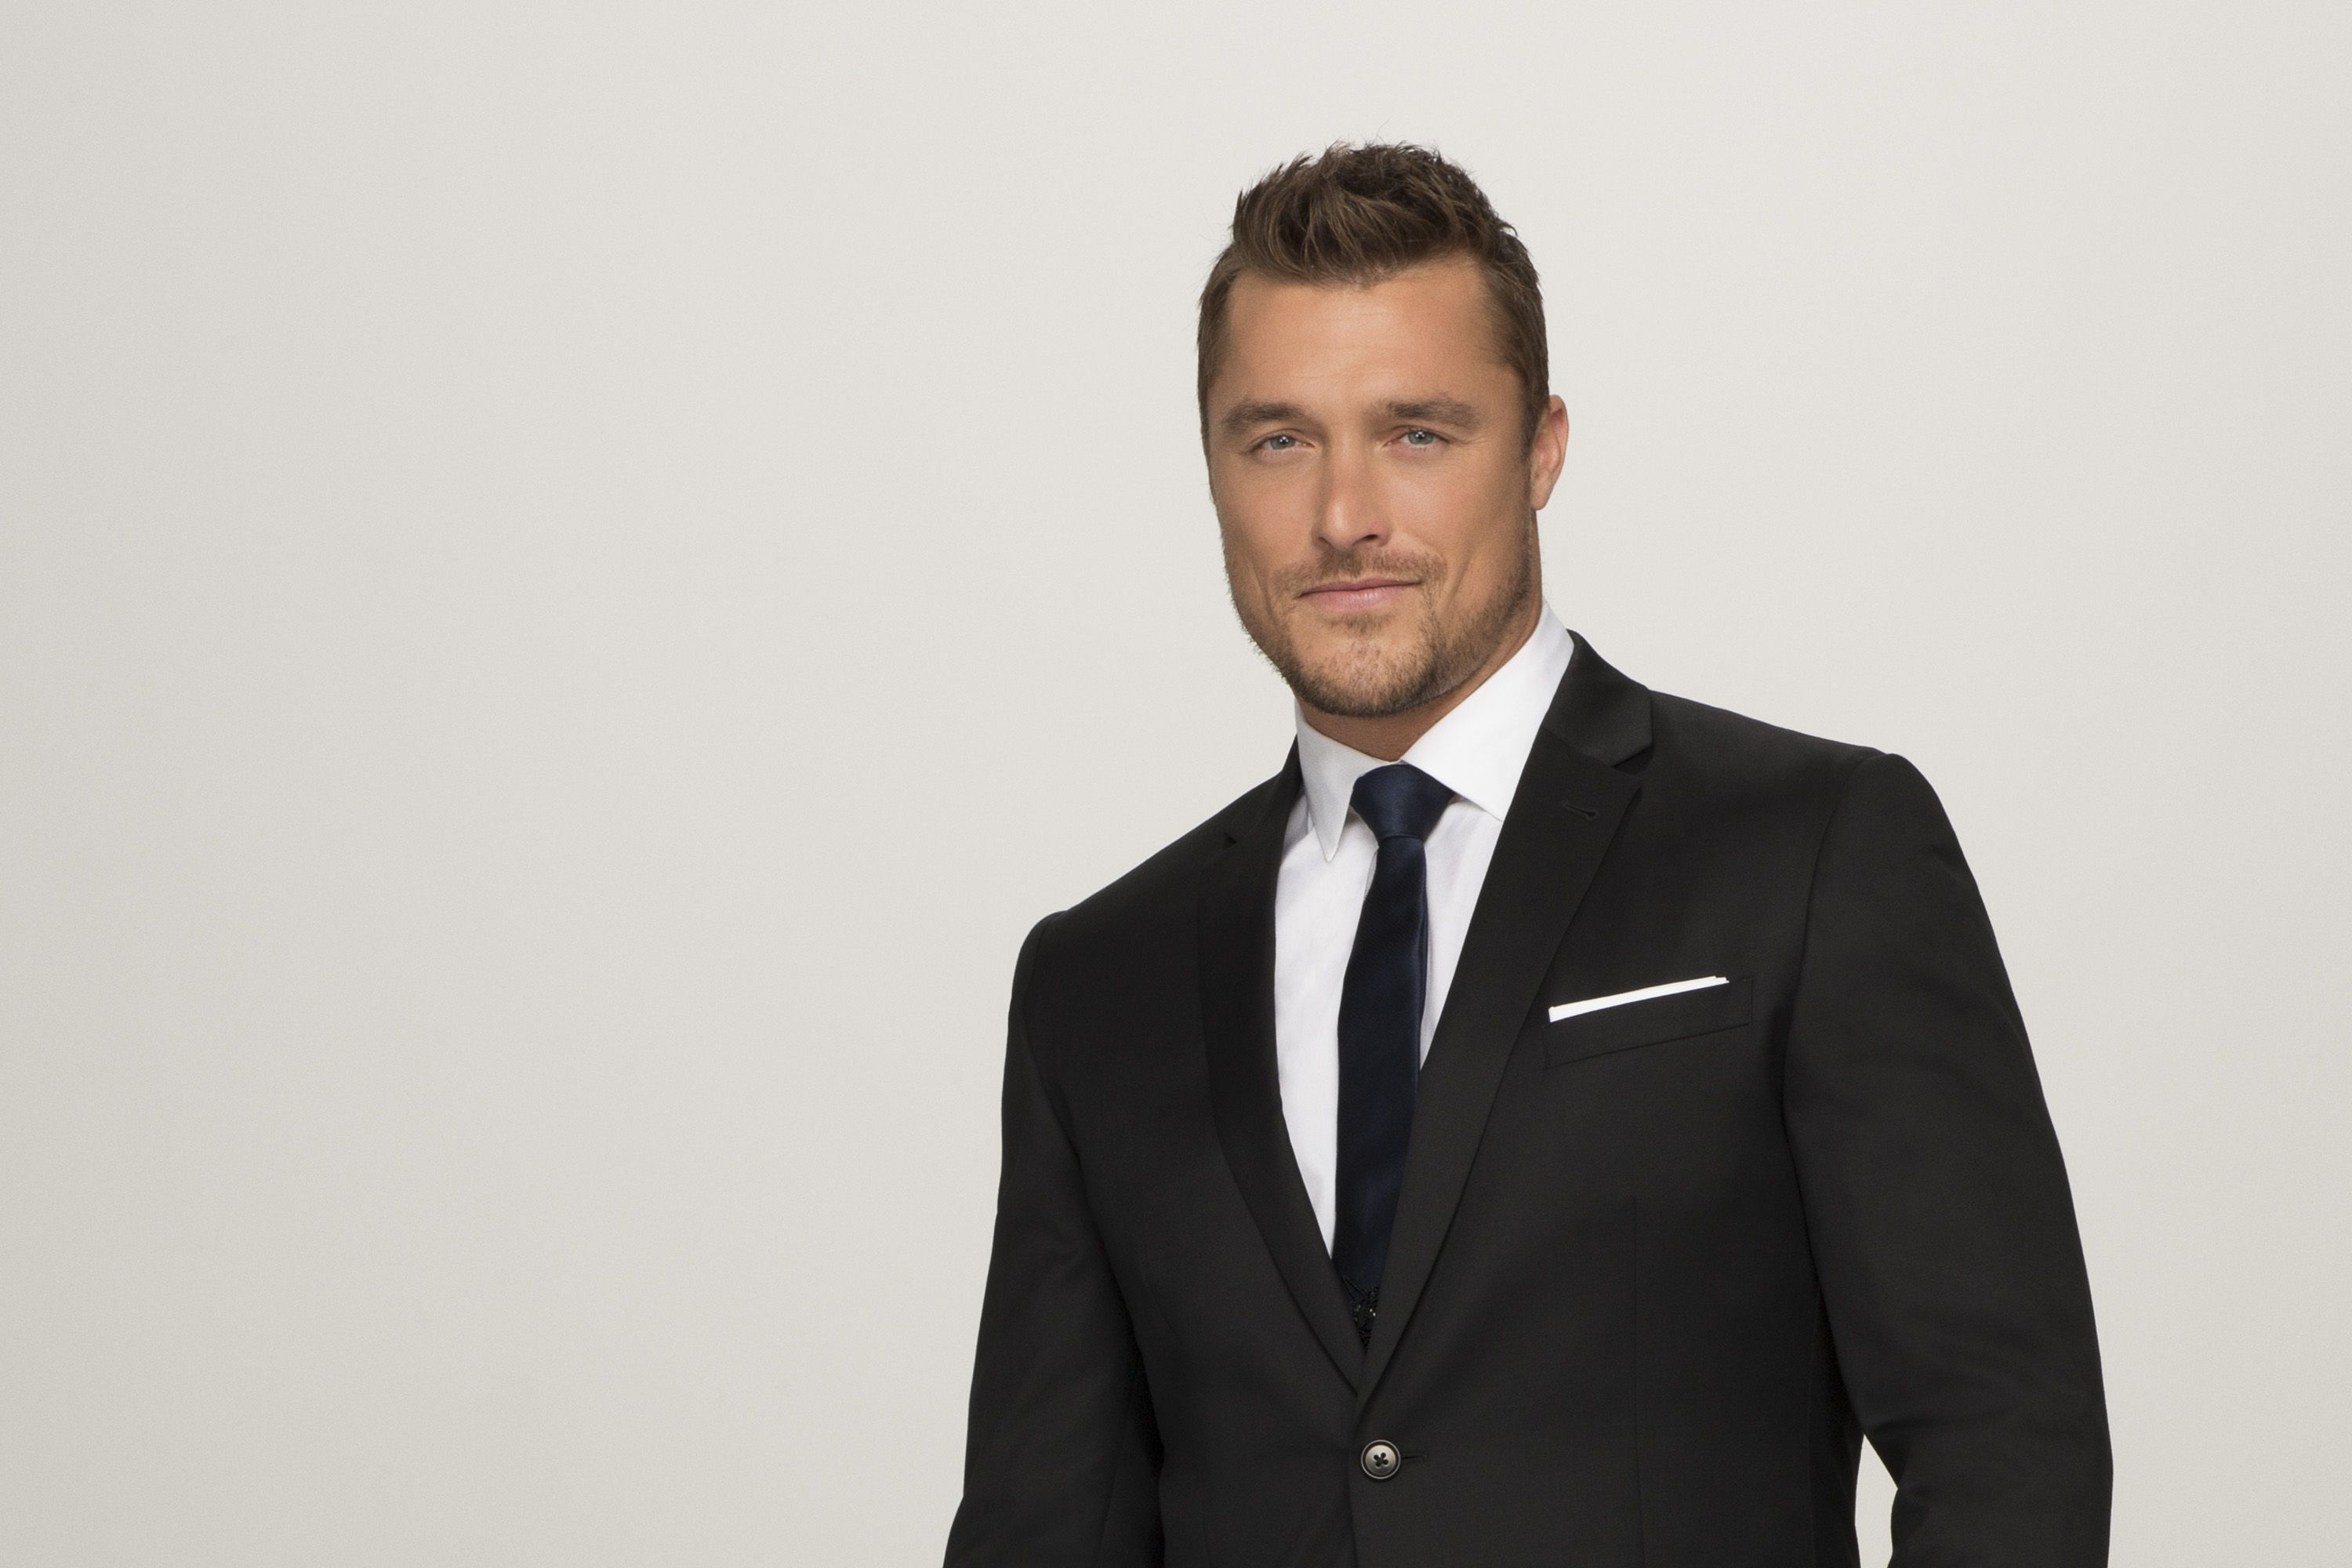 Bachelor Chris Soules Opened Up About His Involvement in the Fatal Car Crash That Killed 66-Year-Old Farmer Kenny Mosher